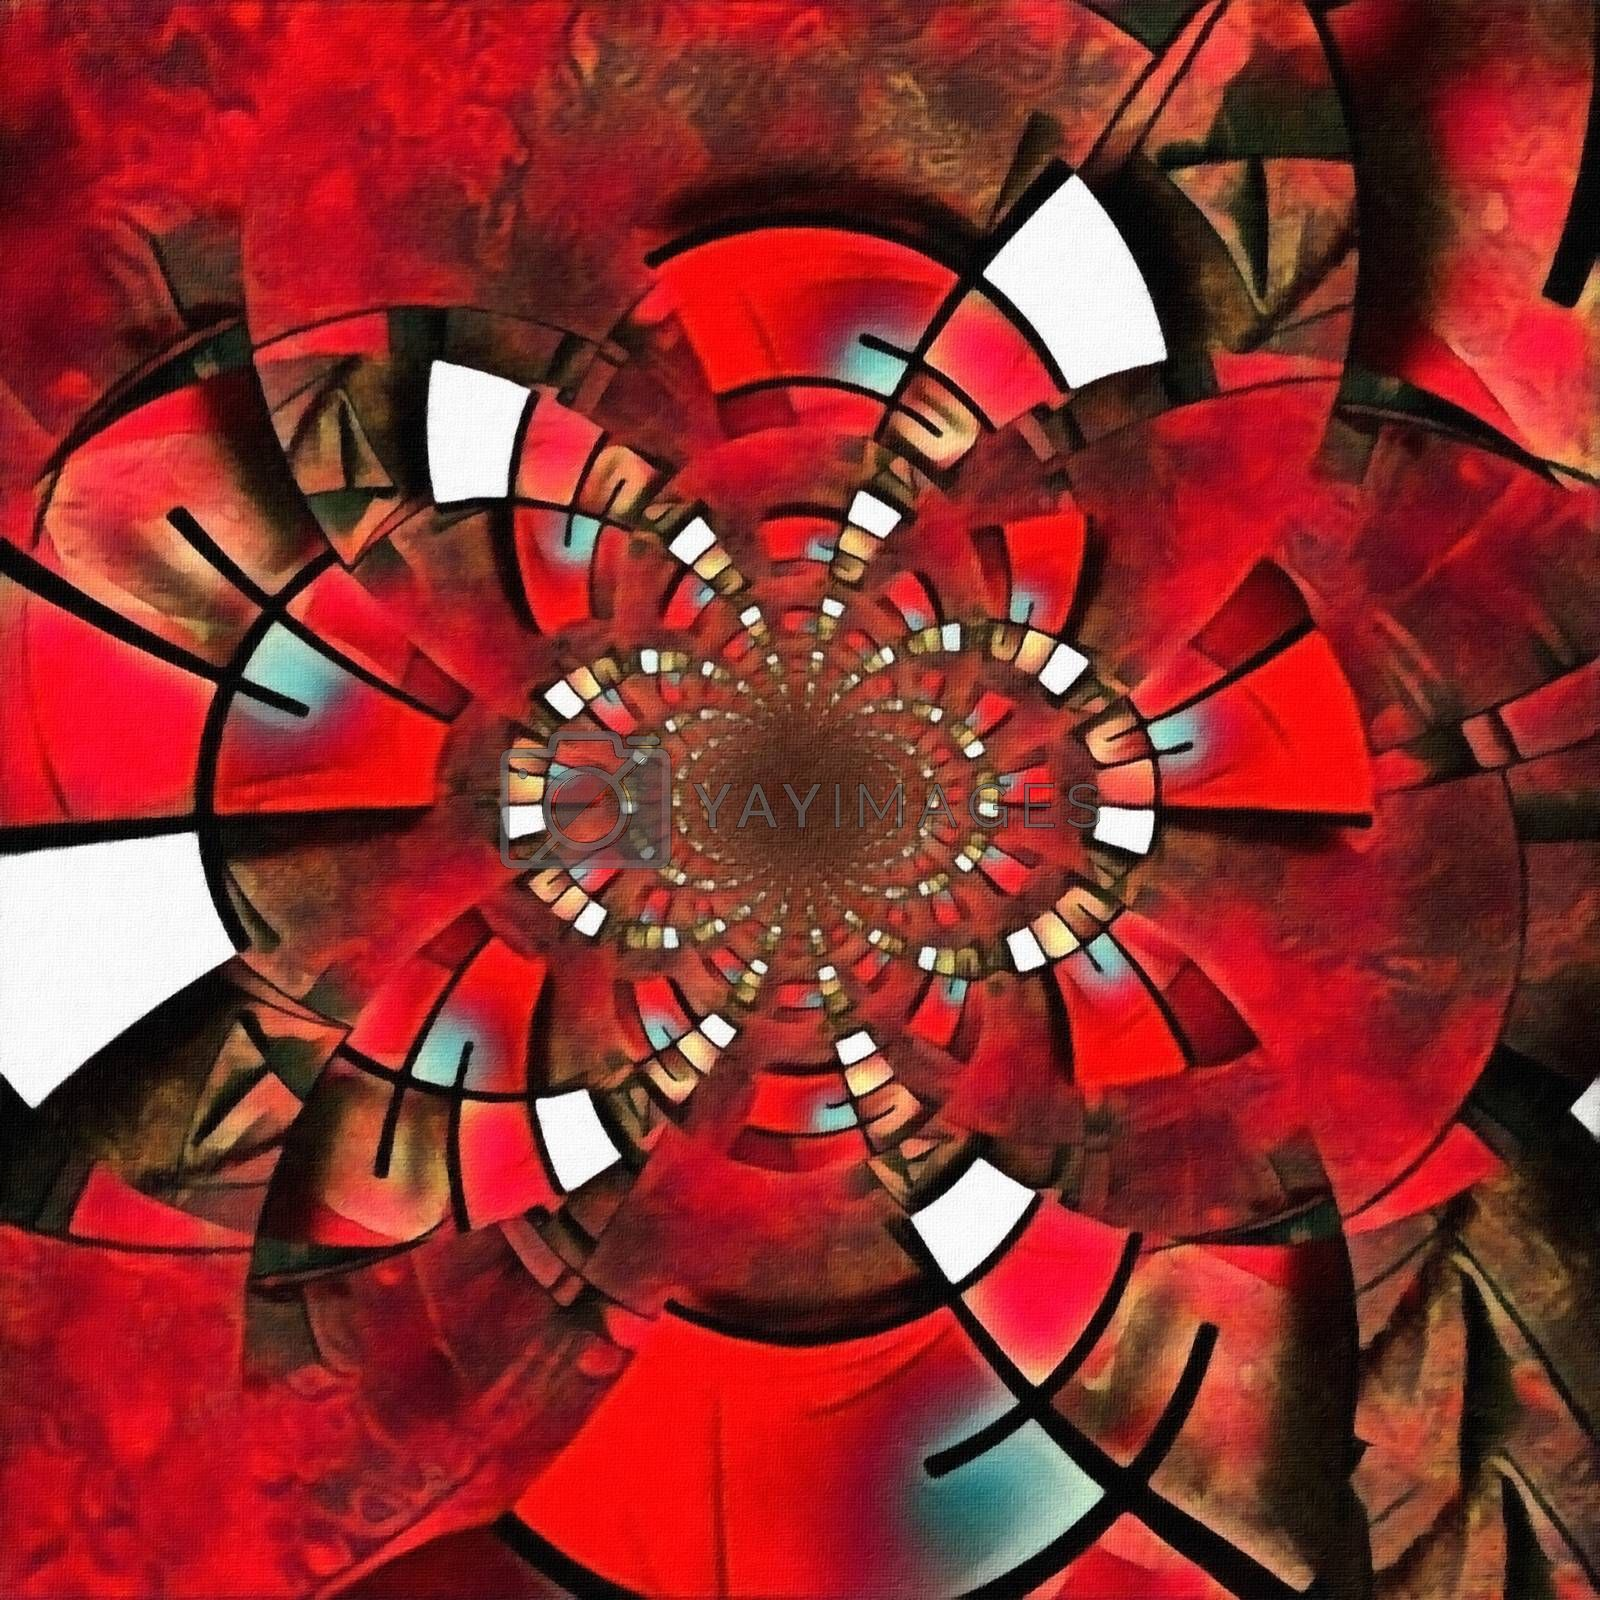 Abstract painting. Mirrored round fractal in Mondrian style. 3D rendering